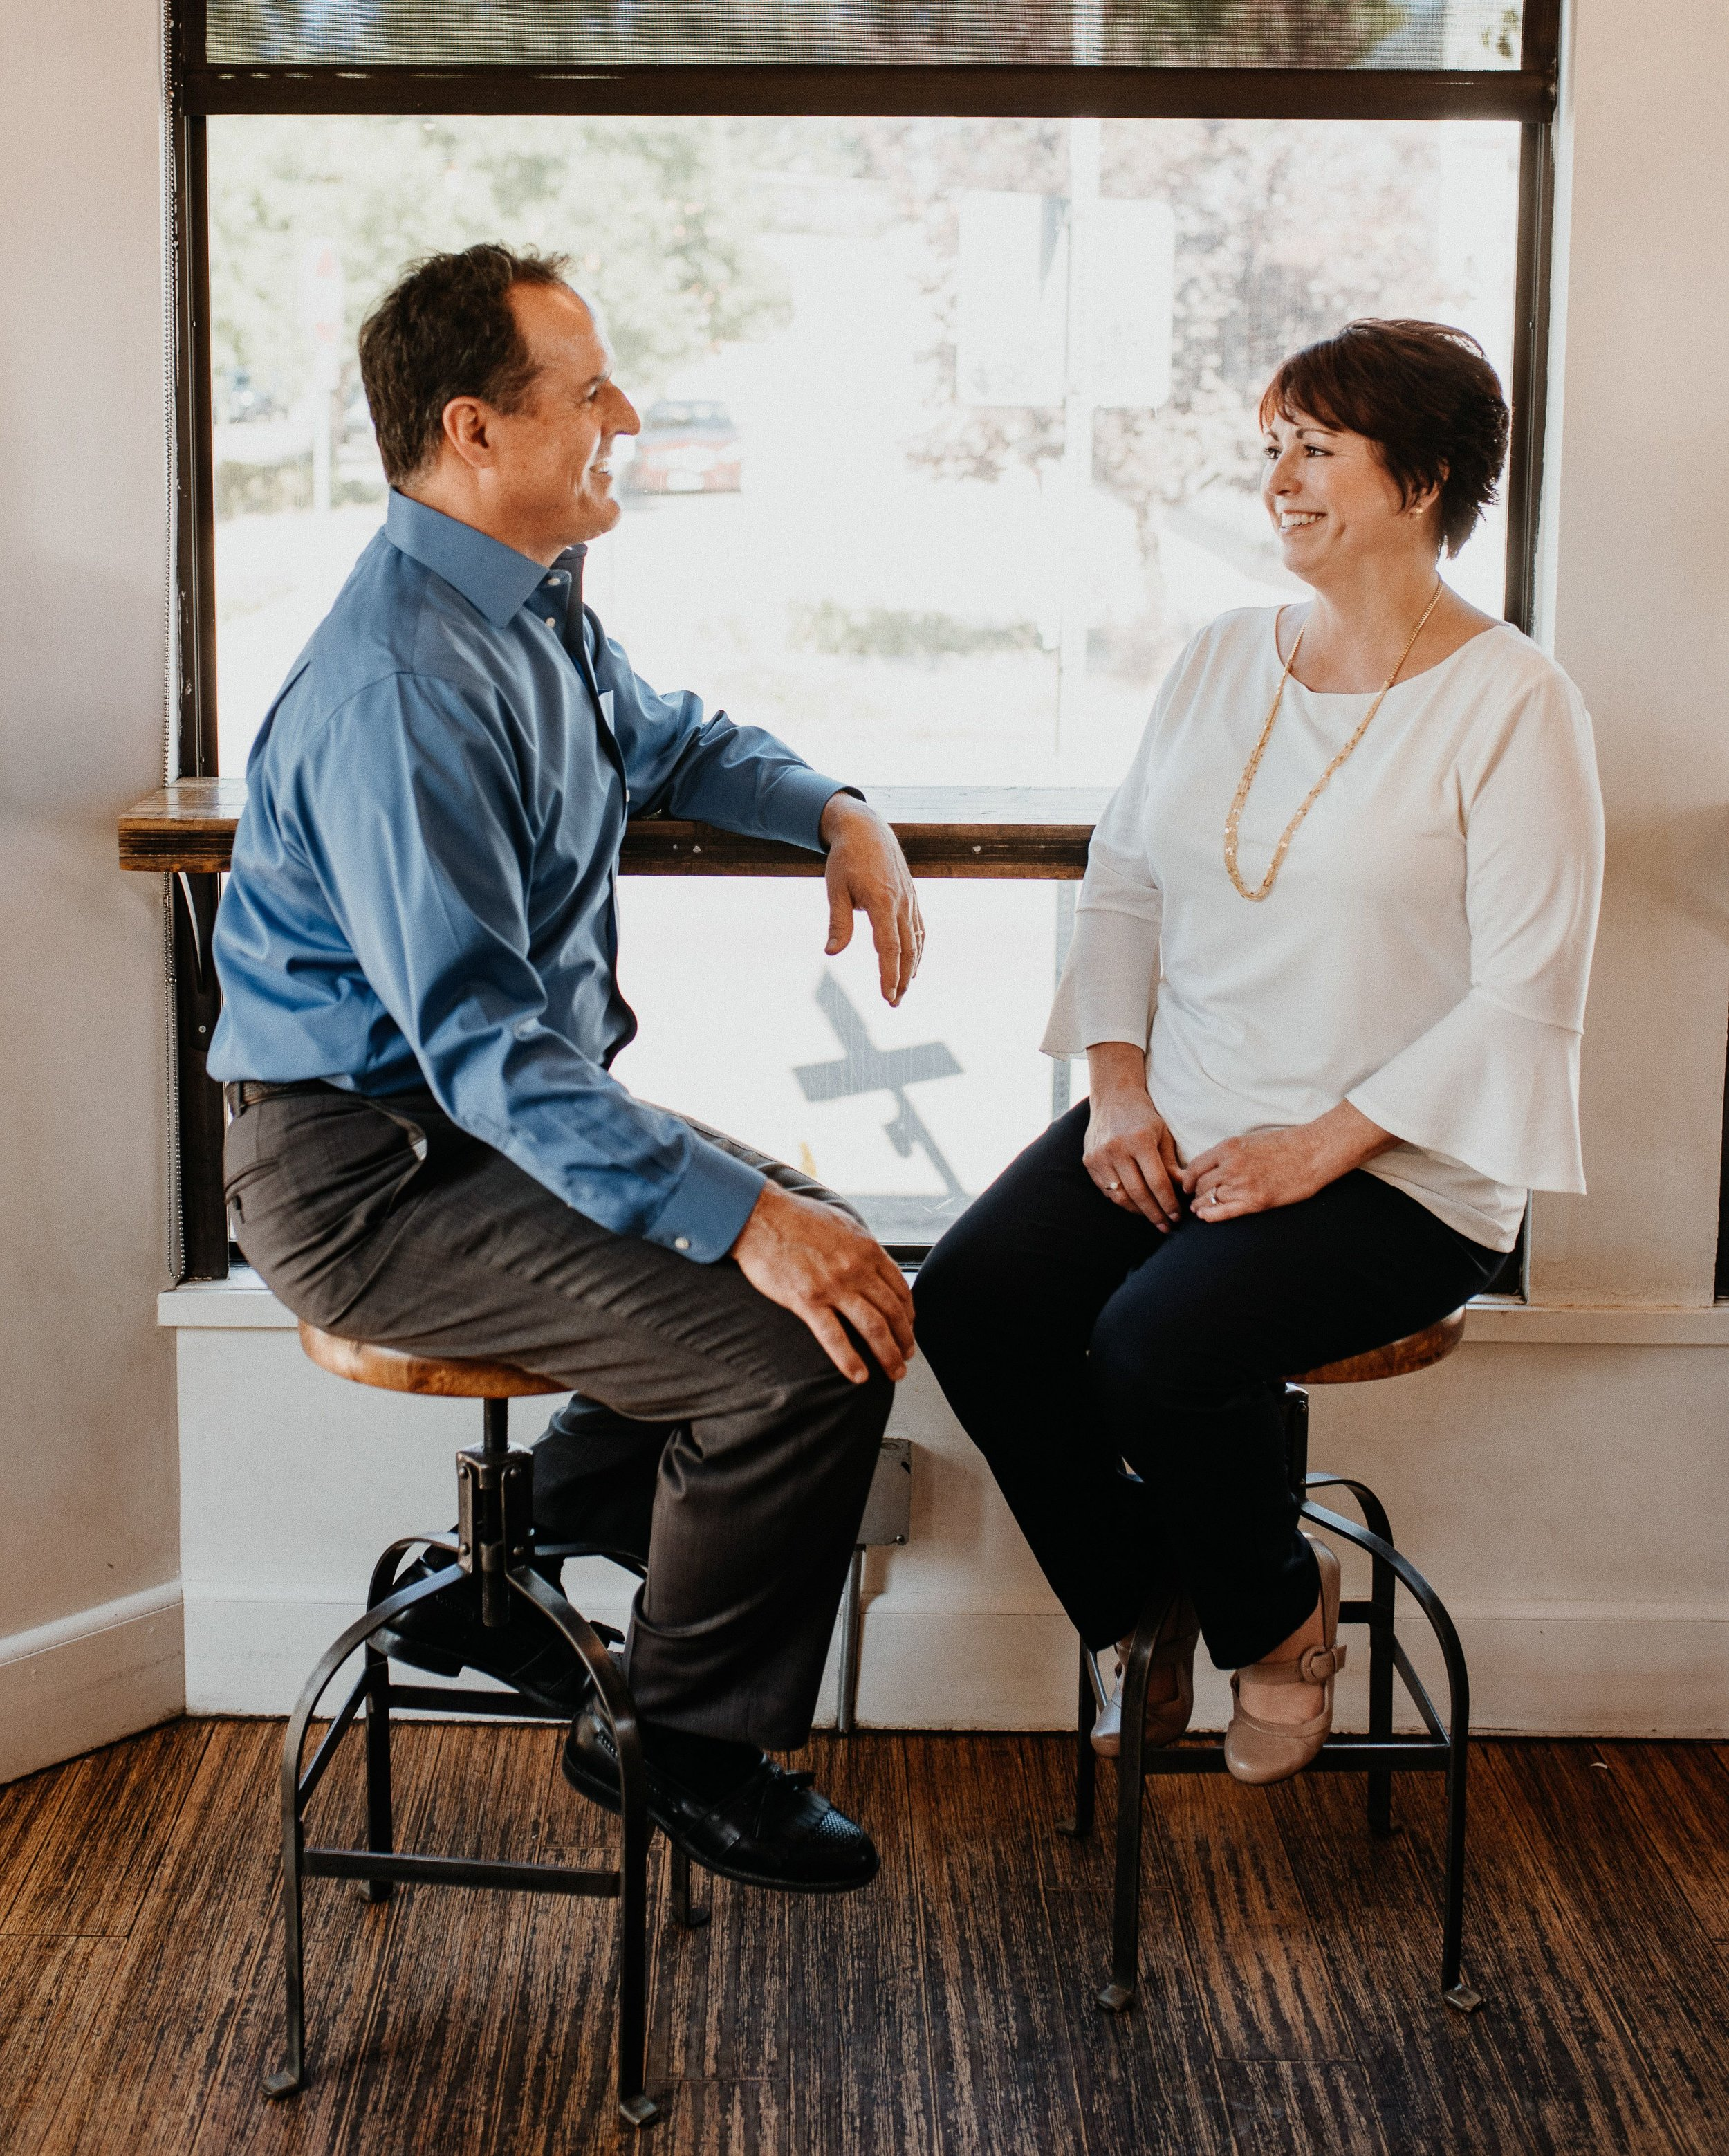 We're Dodds Wealth and we can't wait to meet you. - Dodds Wealth Management Group is a team of specialists dedicated to helping you manage your wealth. We're ready to help you and your family with your financial goals.